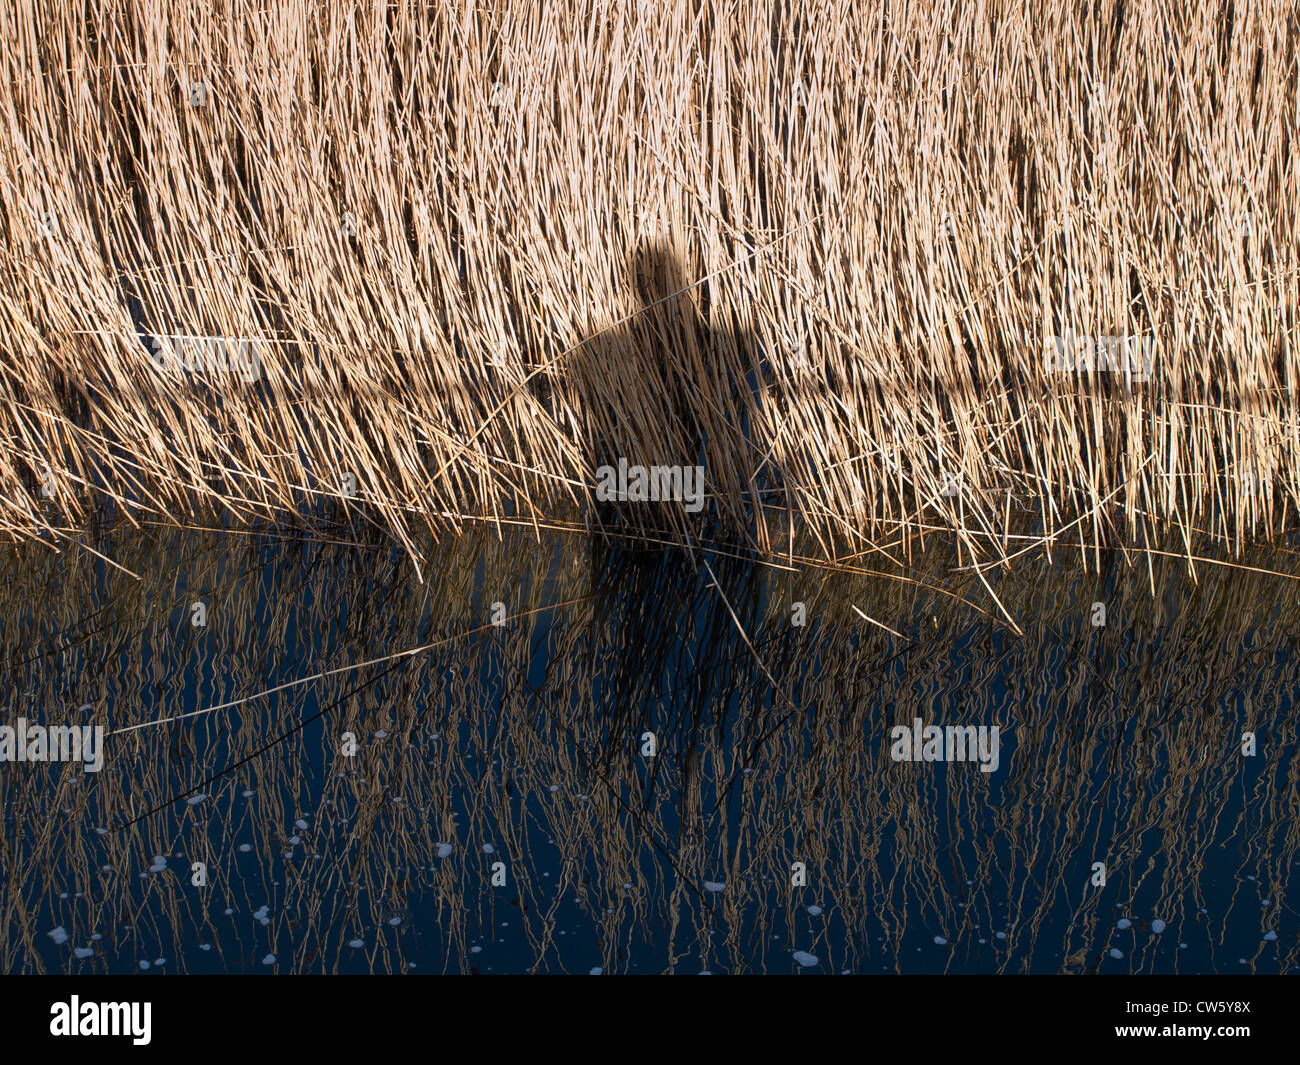 Human shadow leaning on a railing shown on reeds and the water of a lake Stock Photo